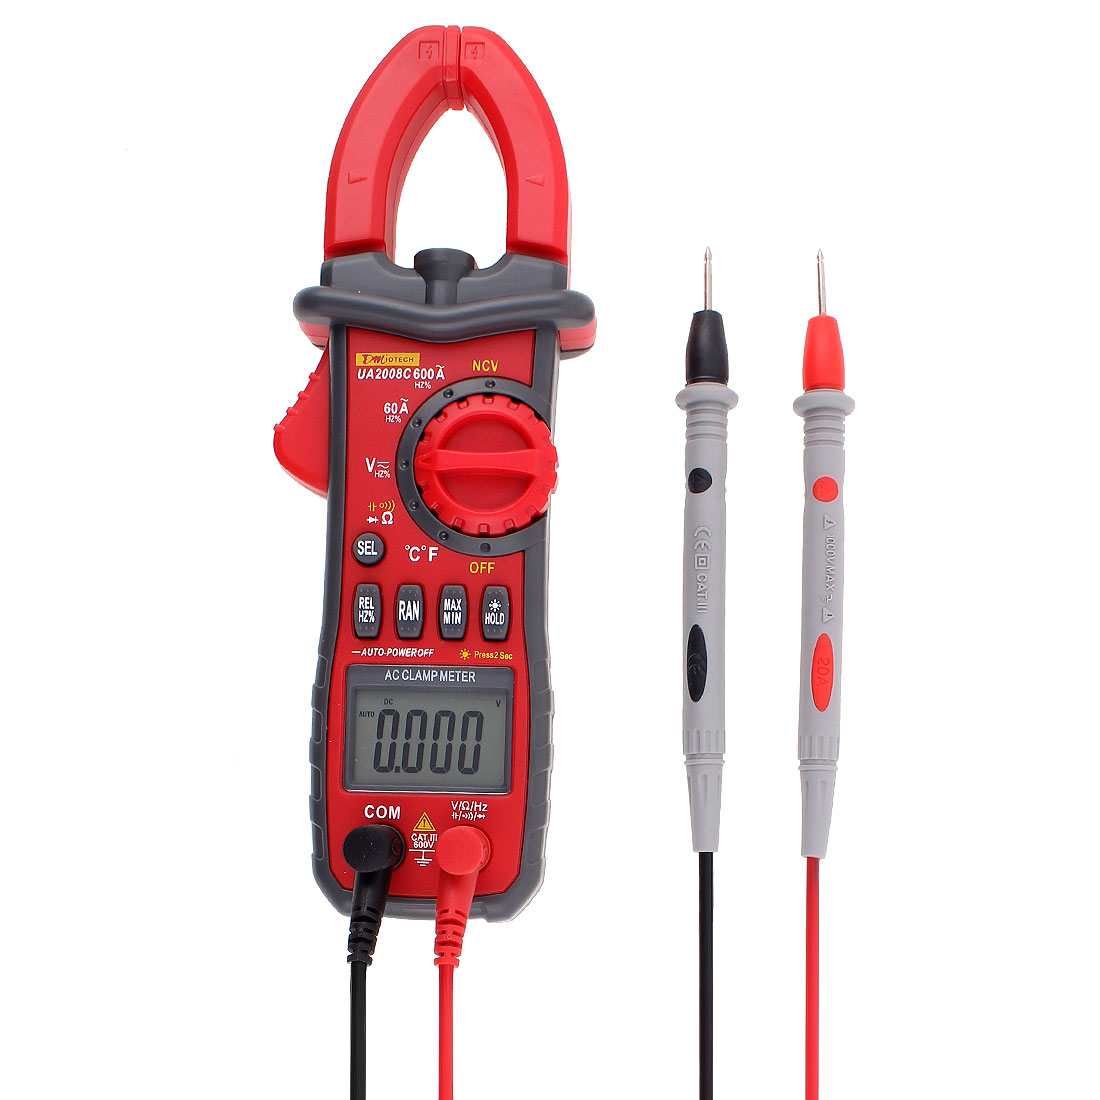 Auto Range Multimeter Current Ohm Non-contact Voltage Detector Resistance Capacitance Frequency Circuit Digital Industrial Handheld Clamp Meter